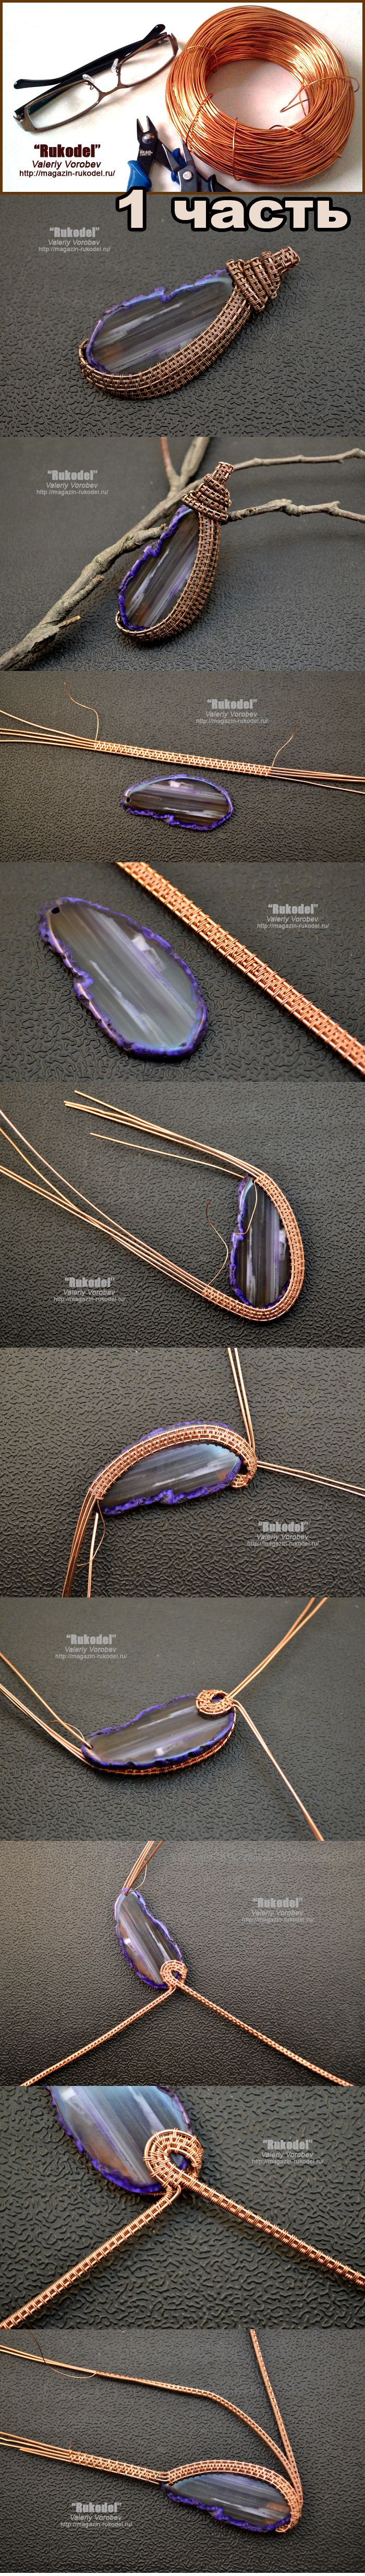 2452 best images about WIRE WRAPPING on Pinterest | Tree of life ...